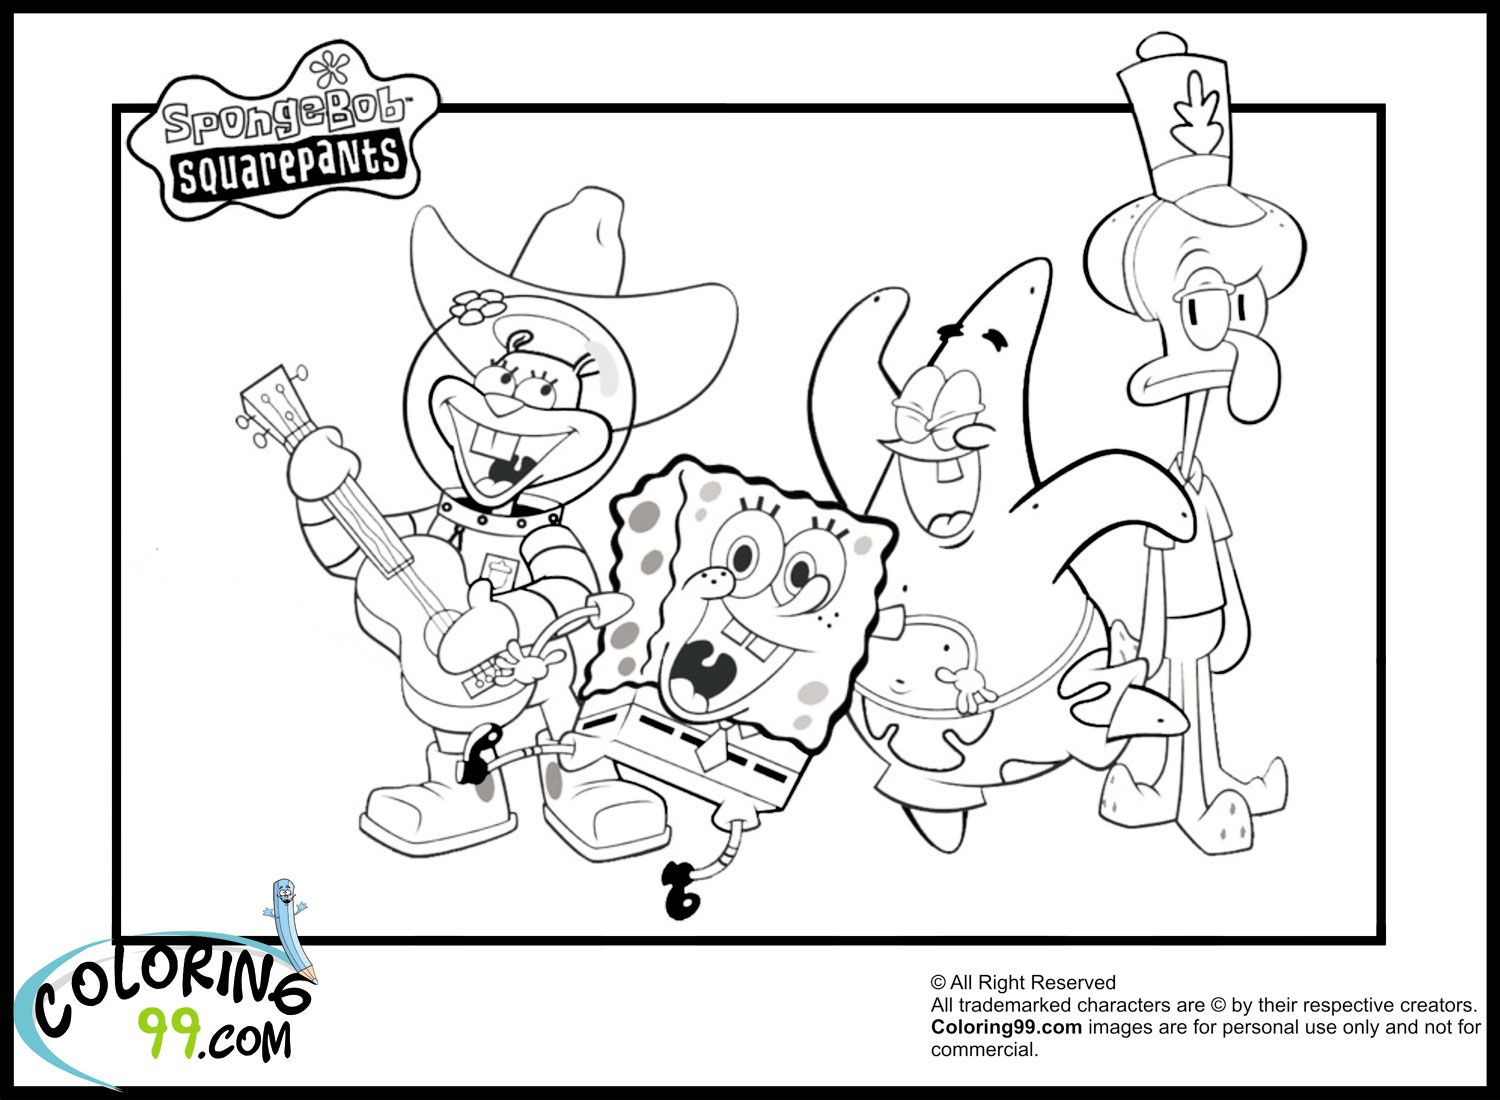 spongebob printable coloring pages printable spongebob printable coloring pages free spongebob printable coloring pages